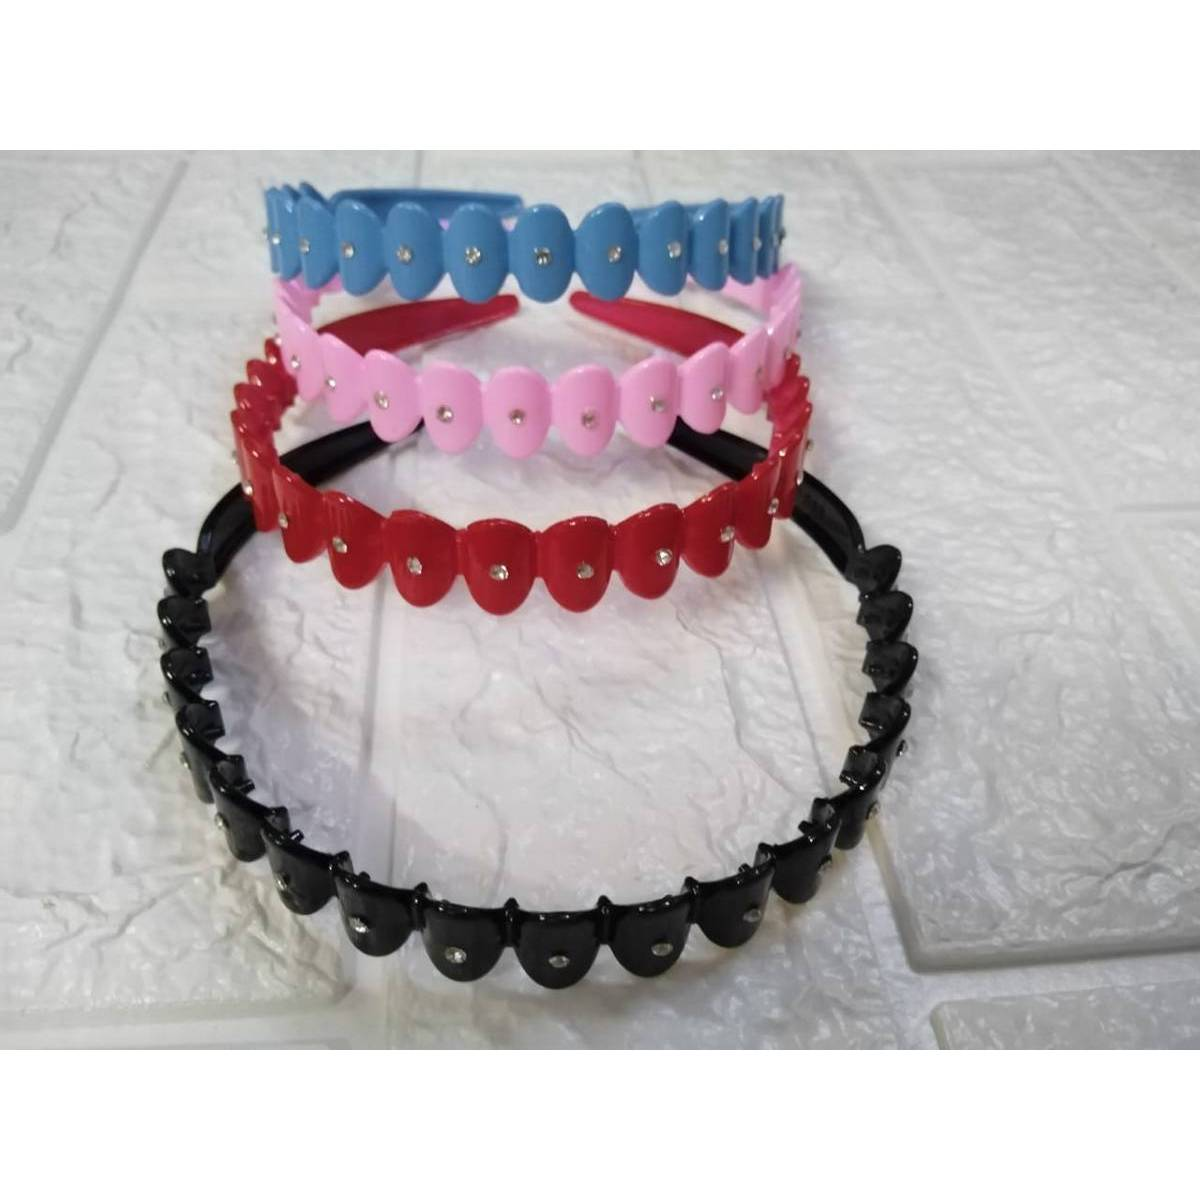 4pc Hair Band Plastic Teeth Head Bands Lined Glitter Hairbands For kids Hard Bow Headband For Girls Hair Accessories 4 Different  colors